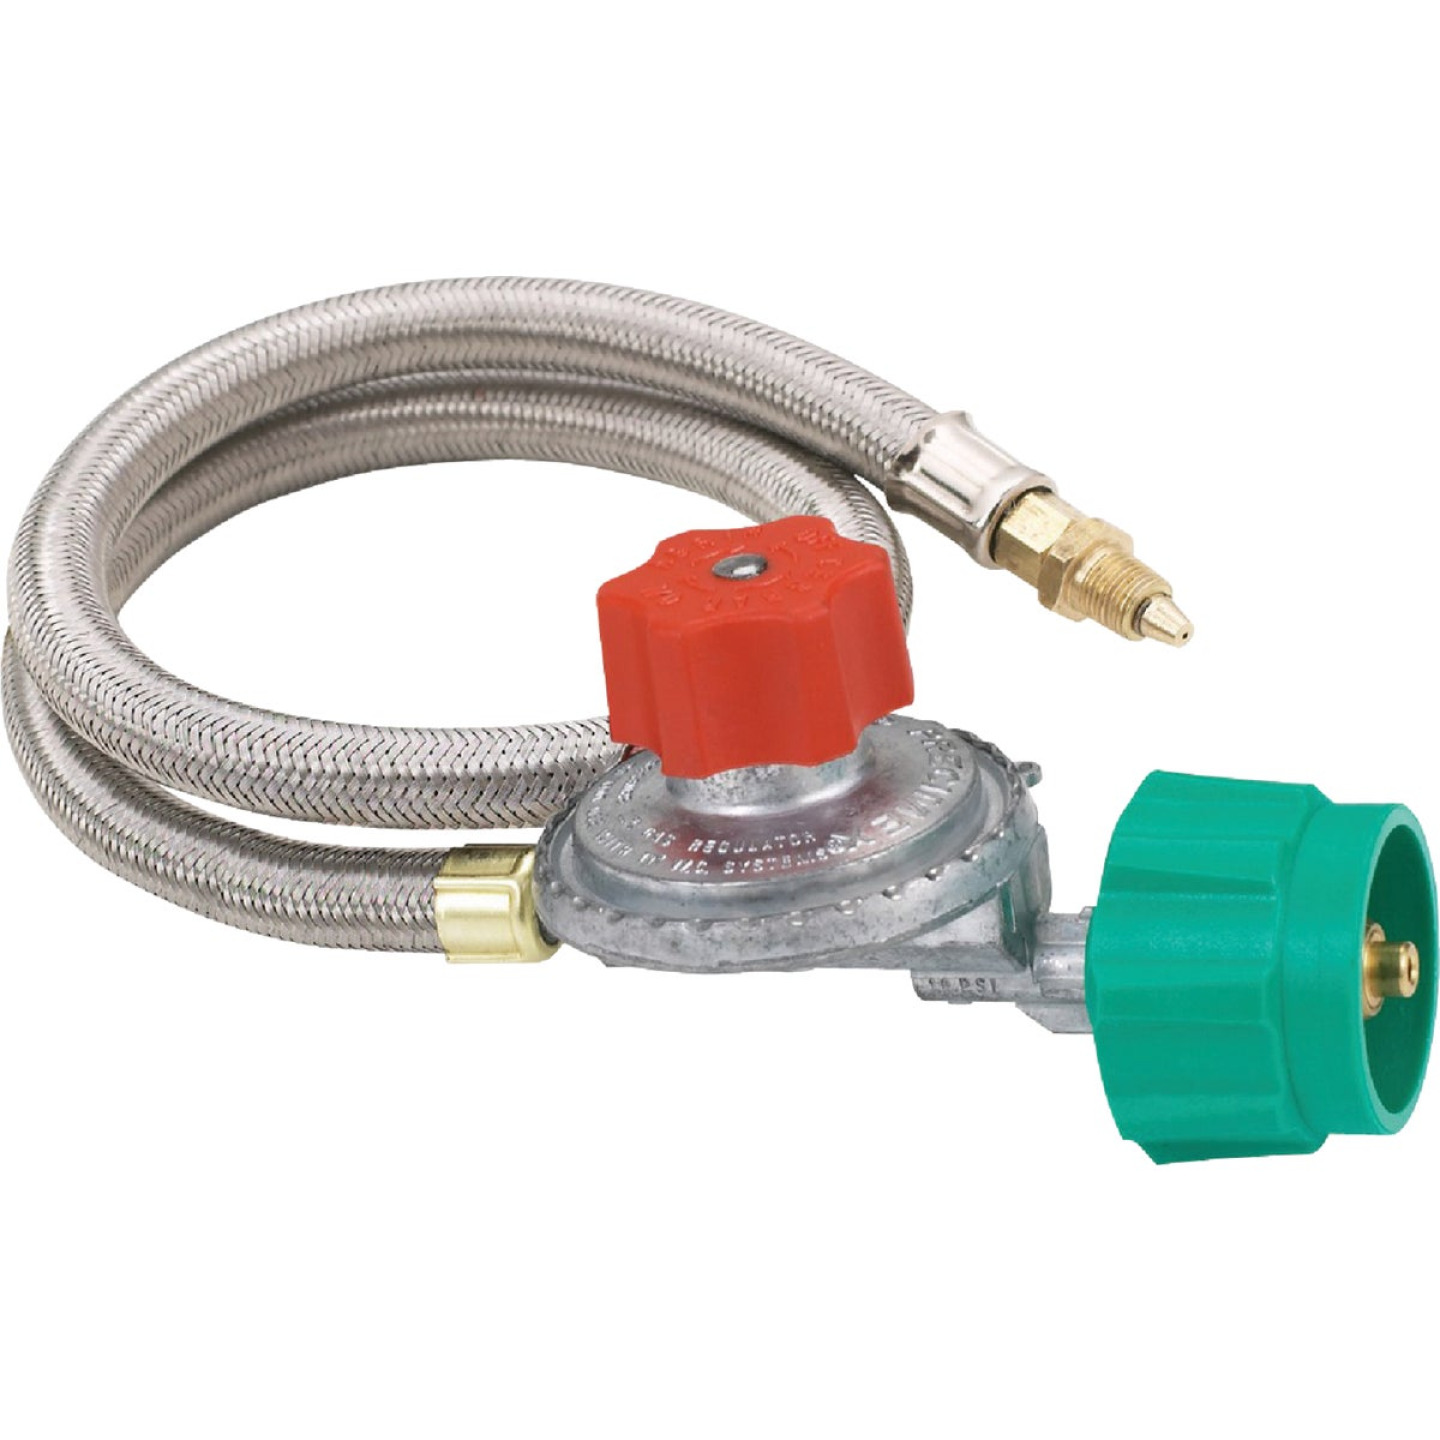 Bayou Classic 36 In. Stainless Steel Low Pressure LP Hose & Adjustable Regulator Image 1